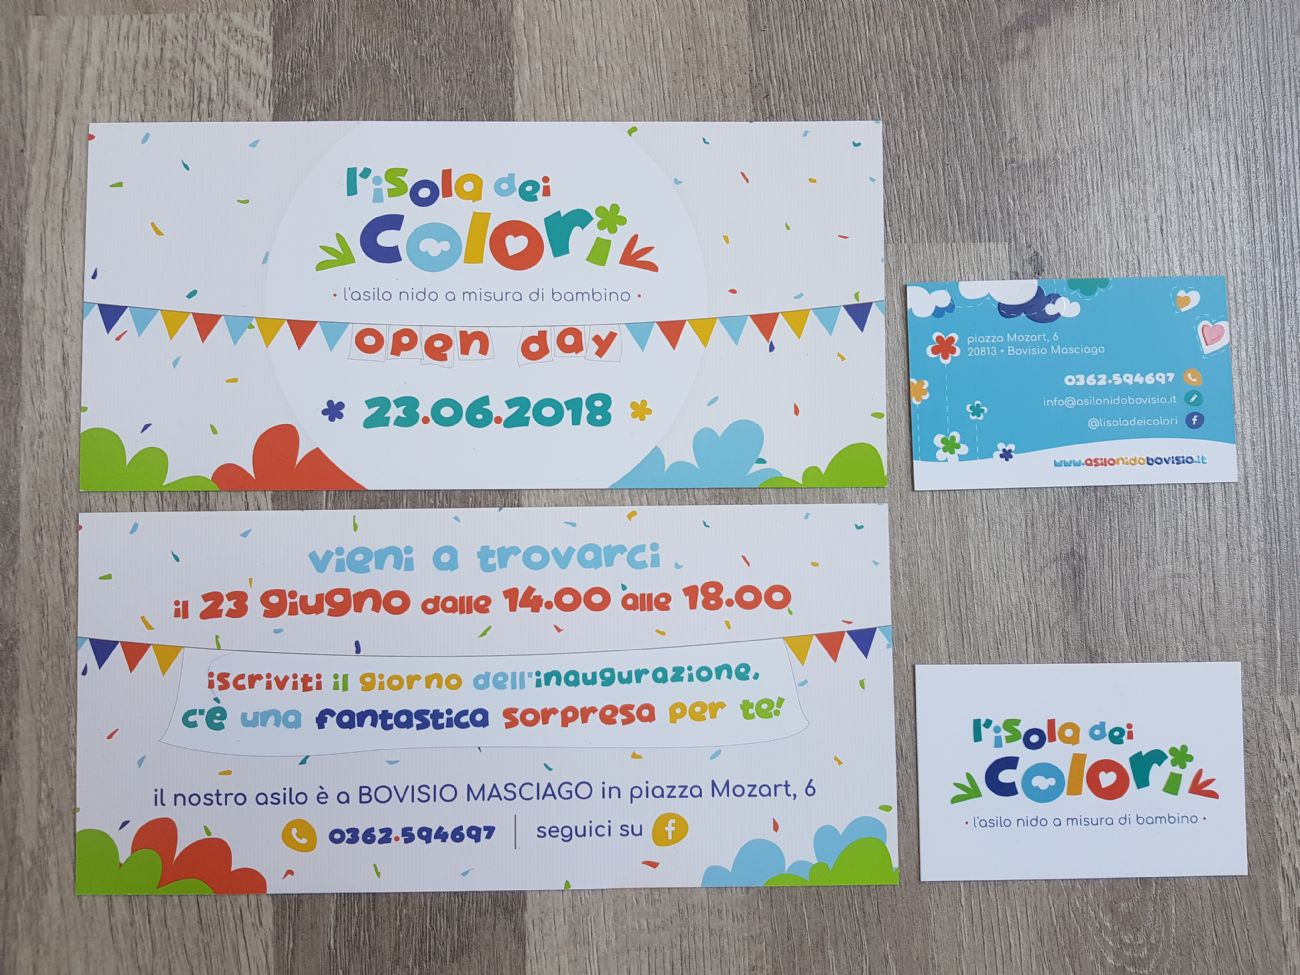 Invito open day Asilo nido Bovisio